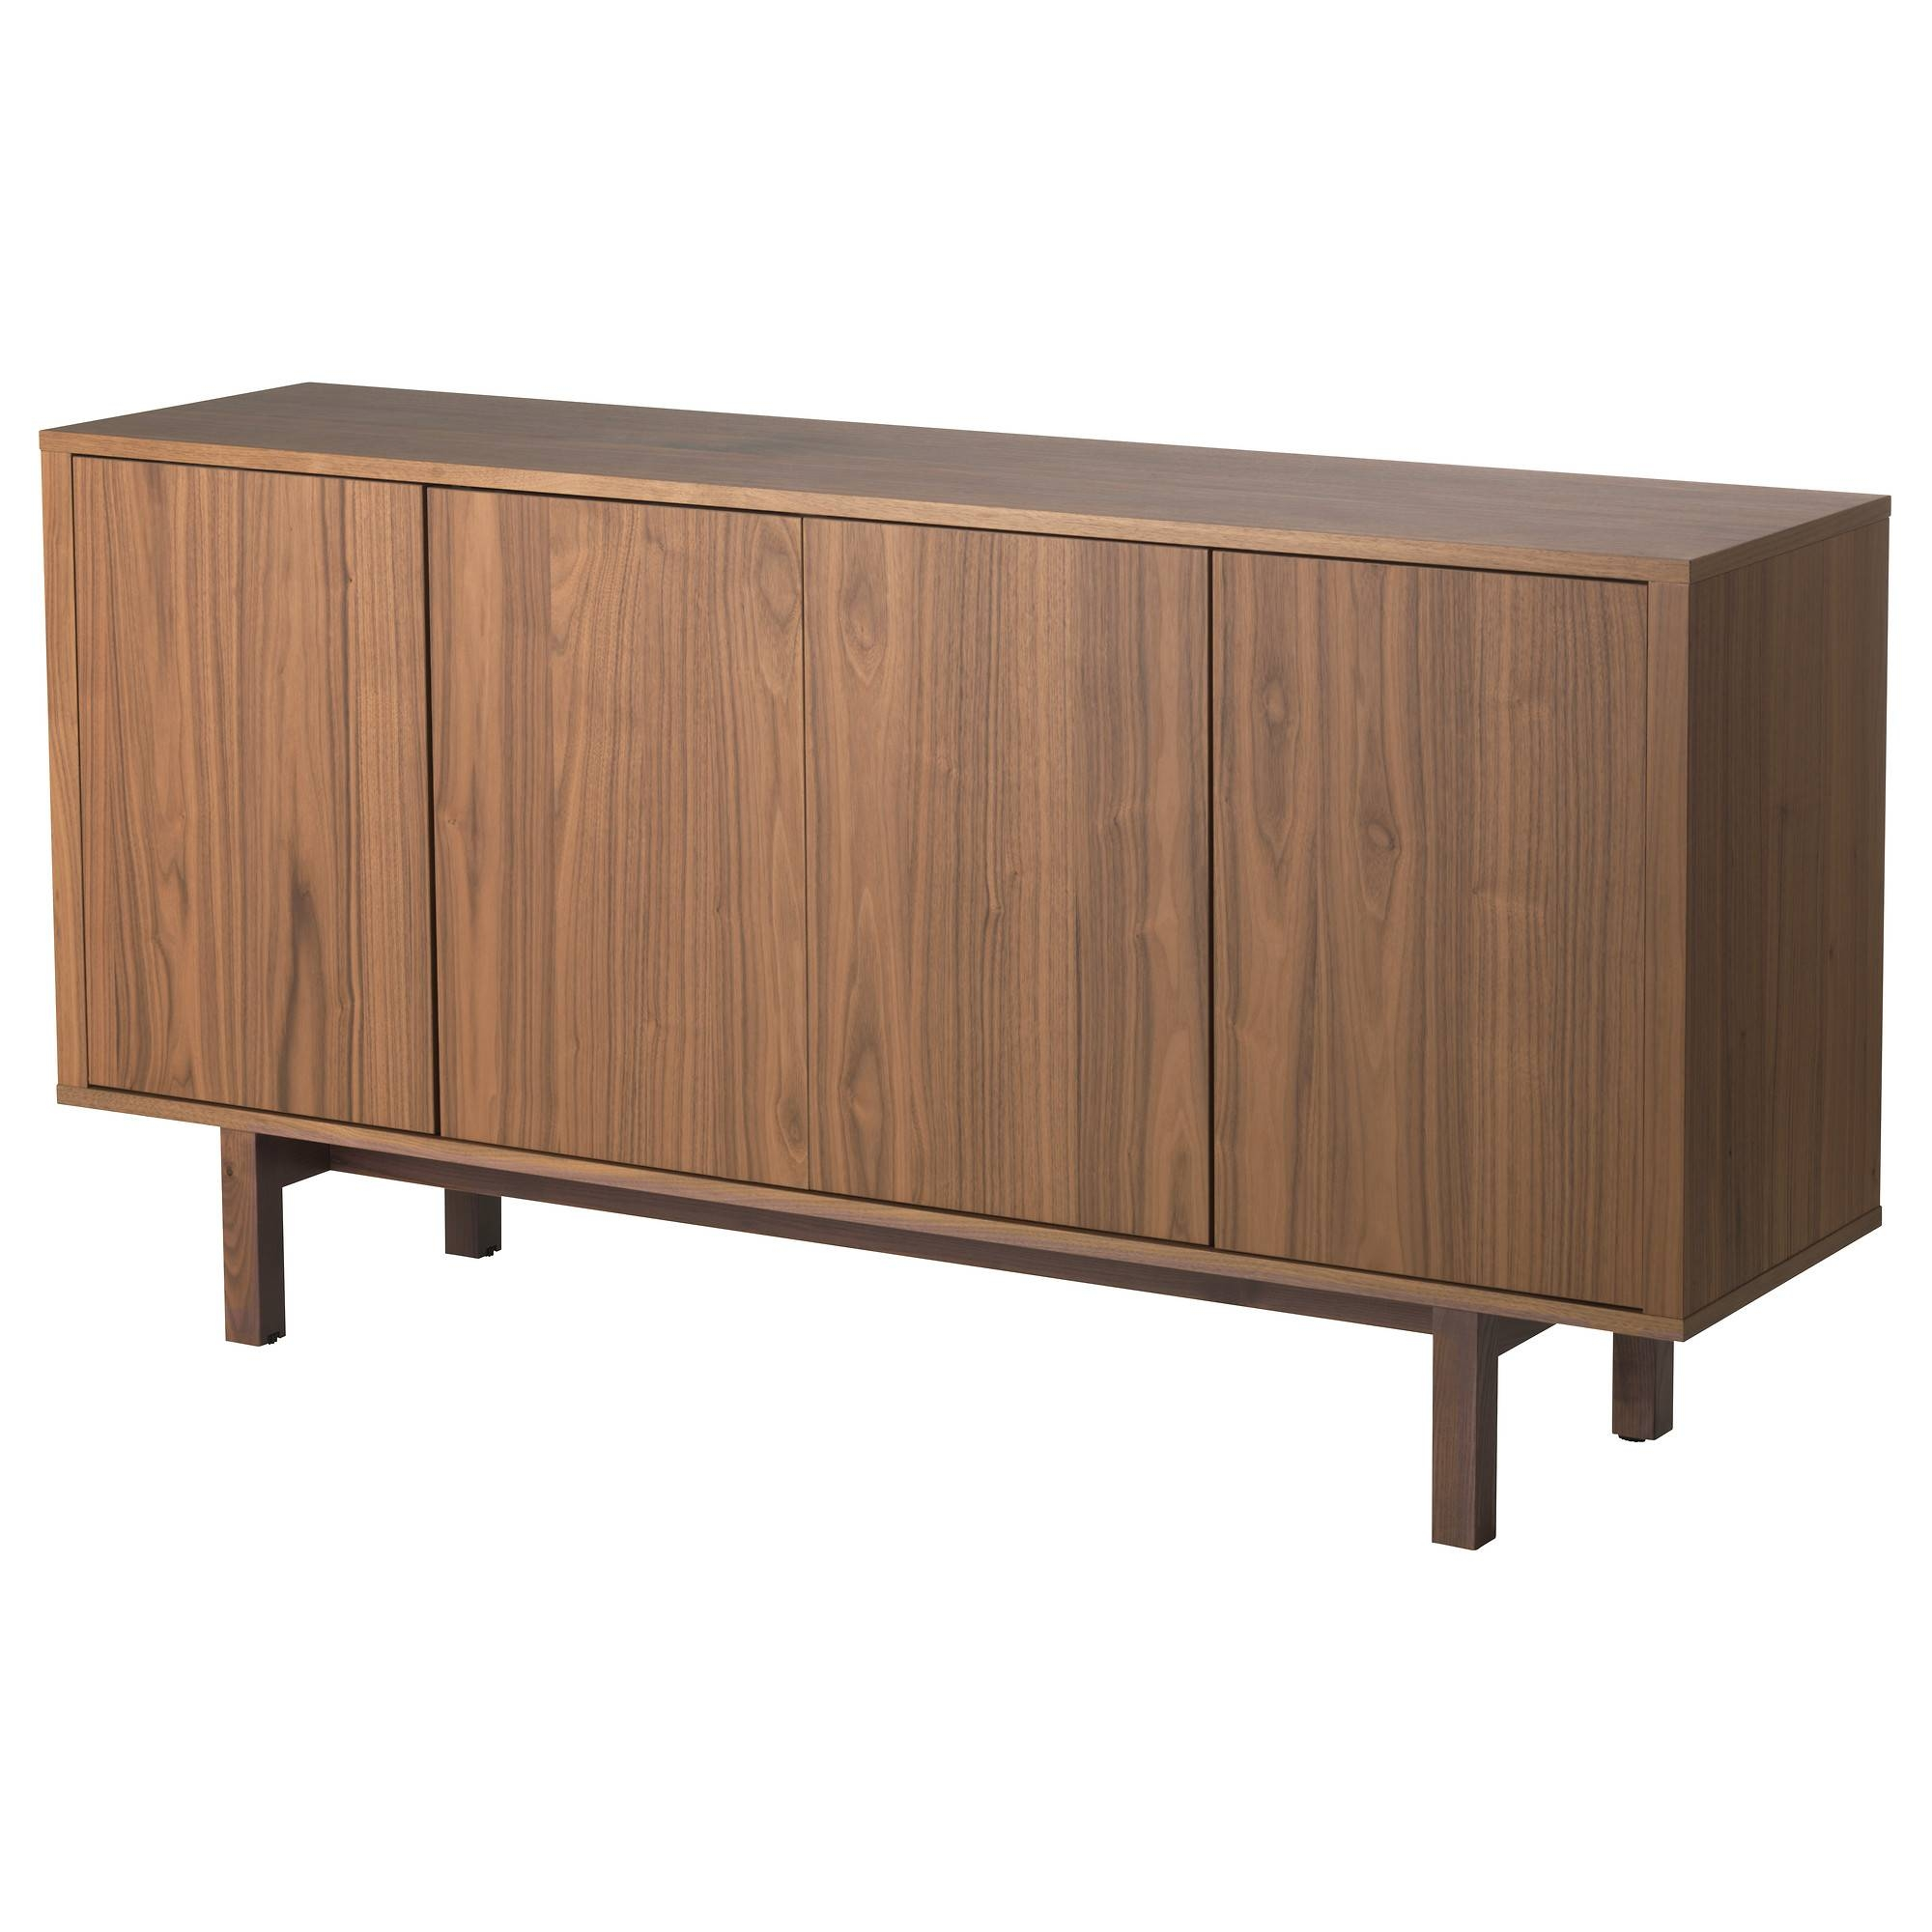 Buffet Tables & Sideboards – Ikea Throughout Most Up To Date Sideboards And Buffet Tables (#2 of 15)